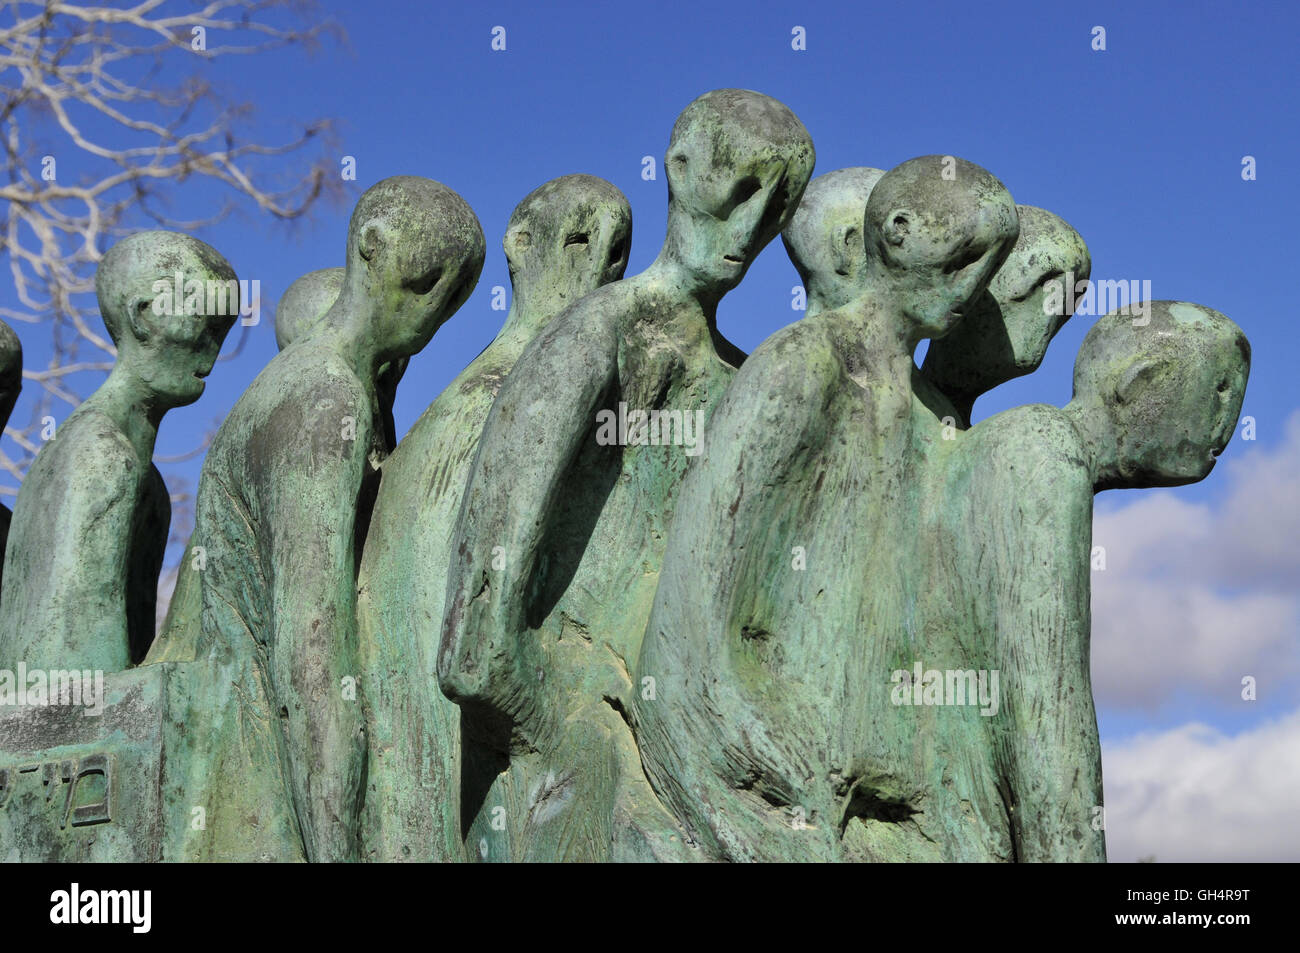 geography / travel, Israel, Jerusalem, Holocaust Memorial in the holocaust memorial Yad Vashem, Middle East, East, - Stock Image